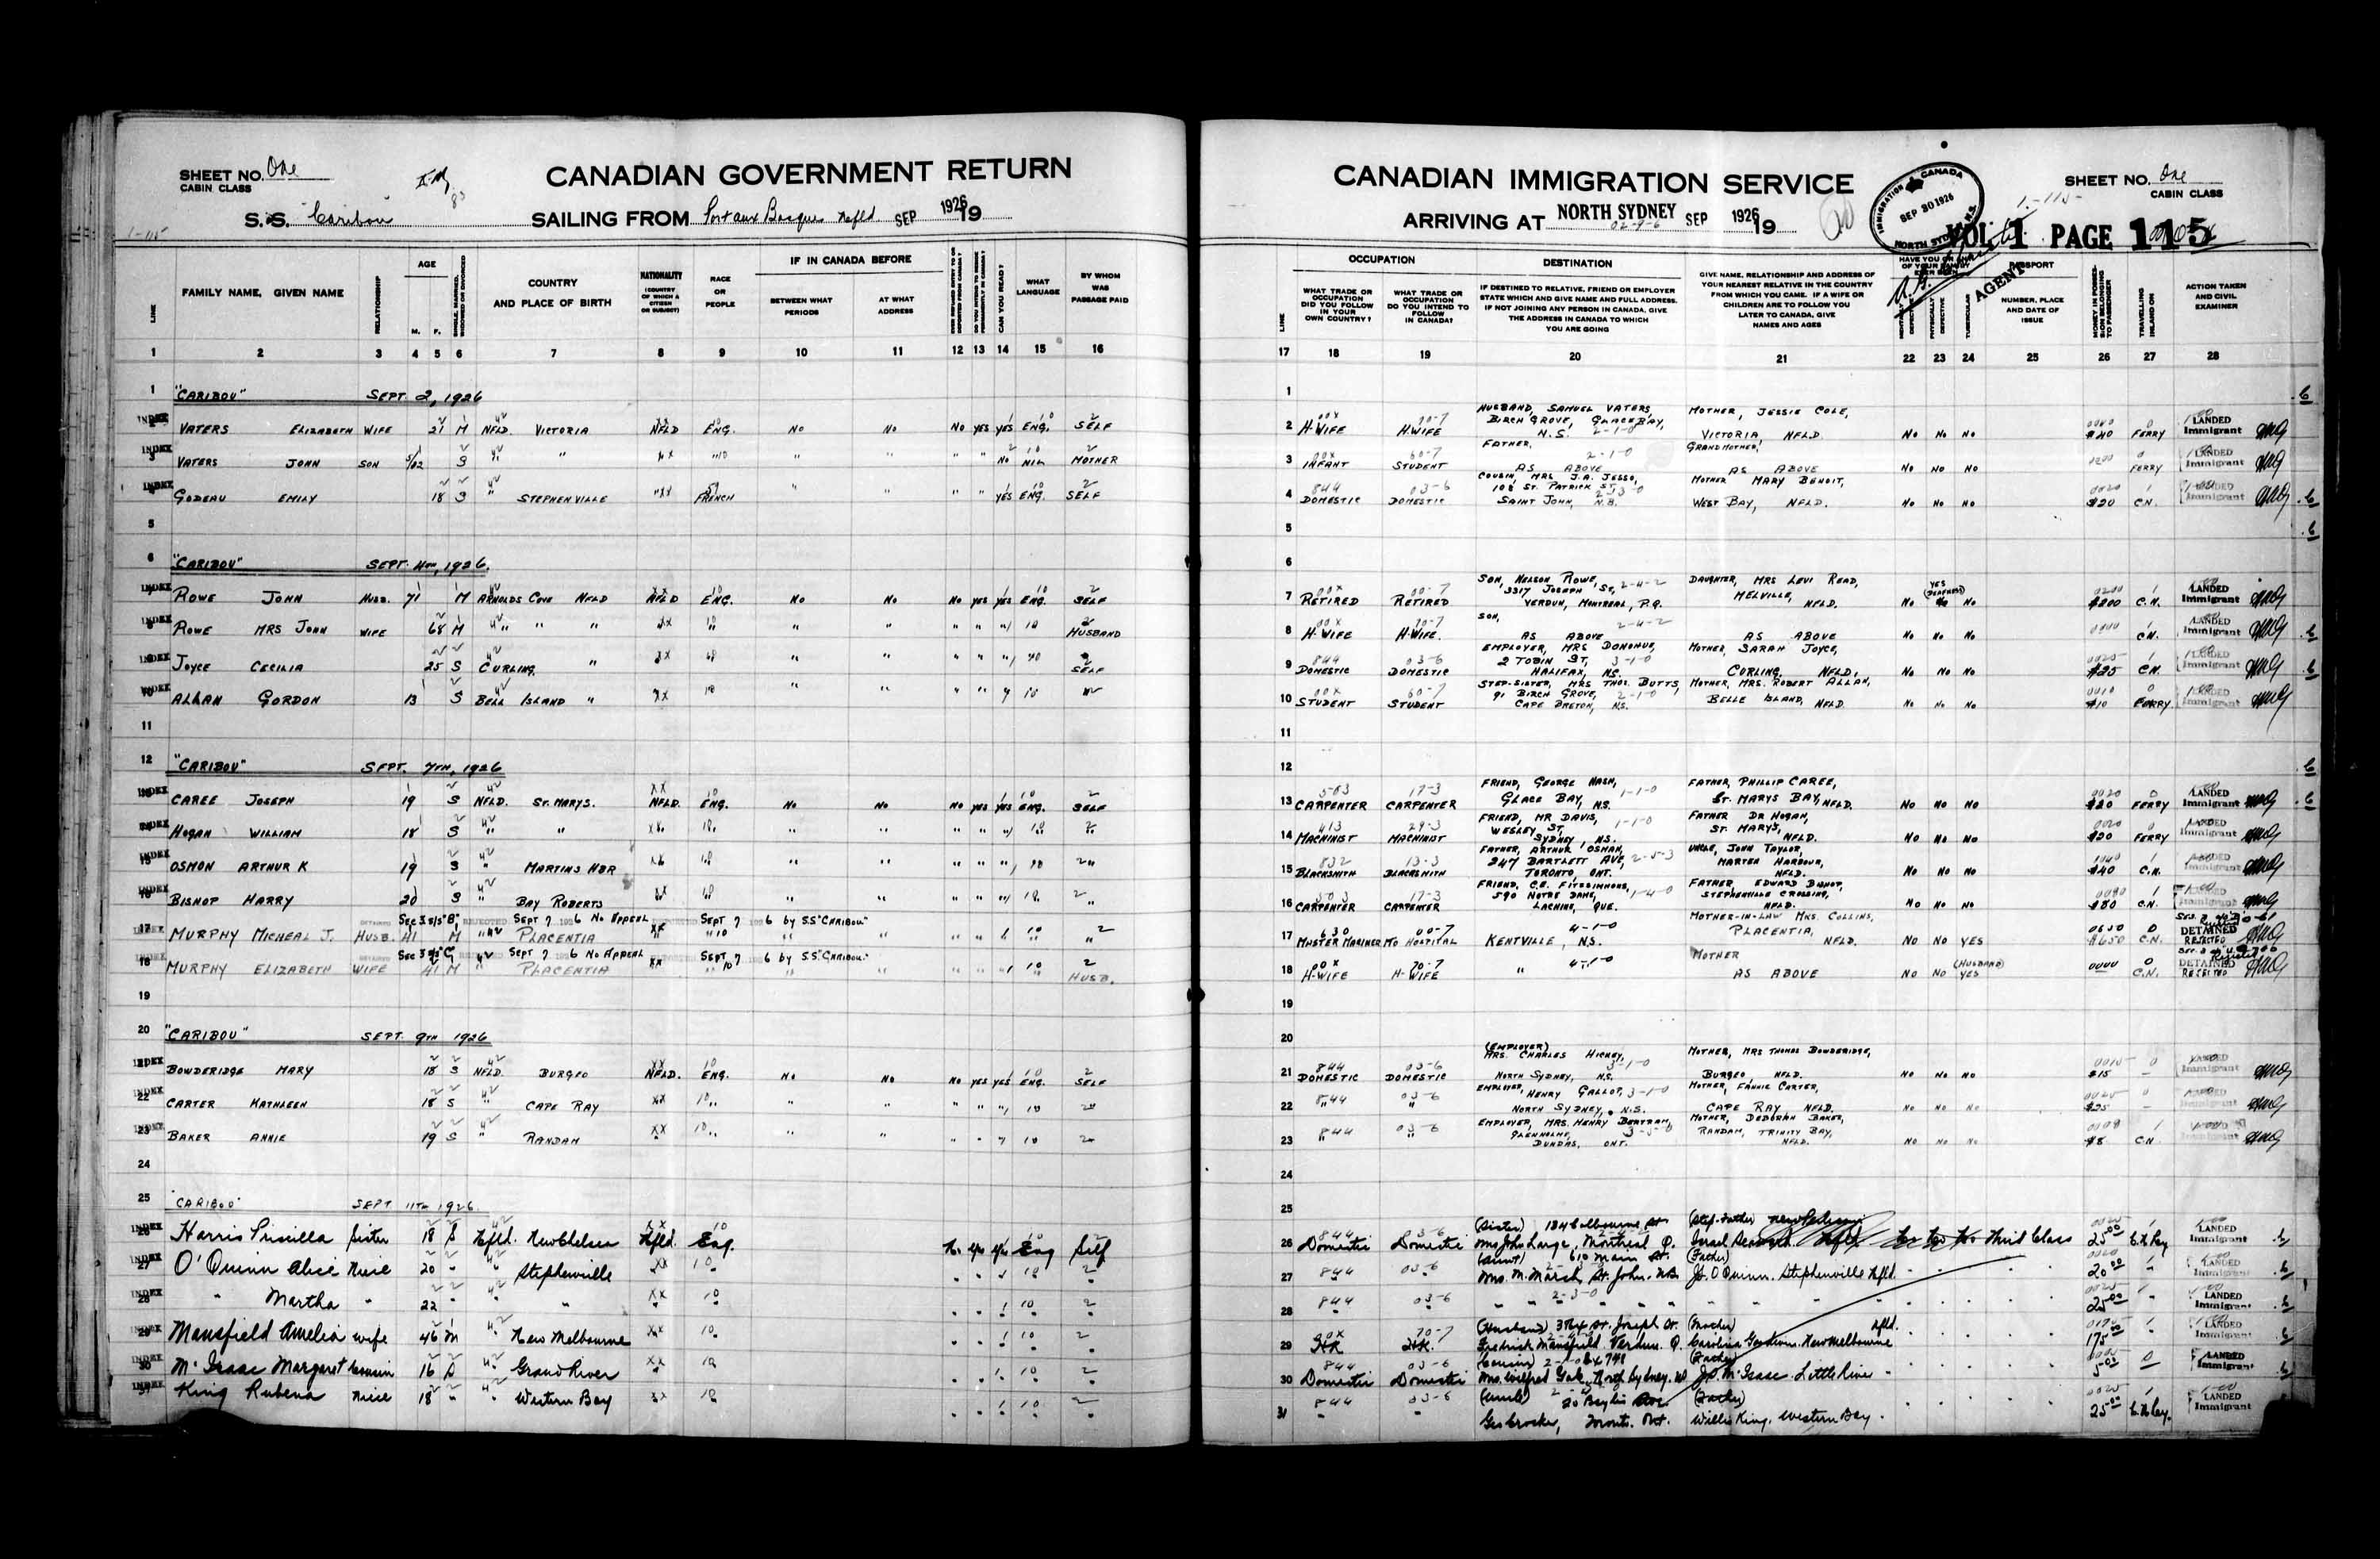 Title: Passenger Lists: North Sydney (1925-1935) - Mikan Number: 161342 - Microform: t-14865